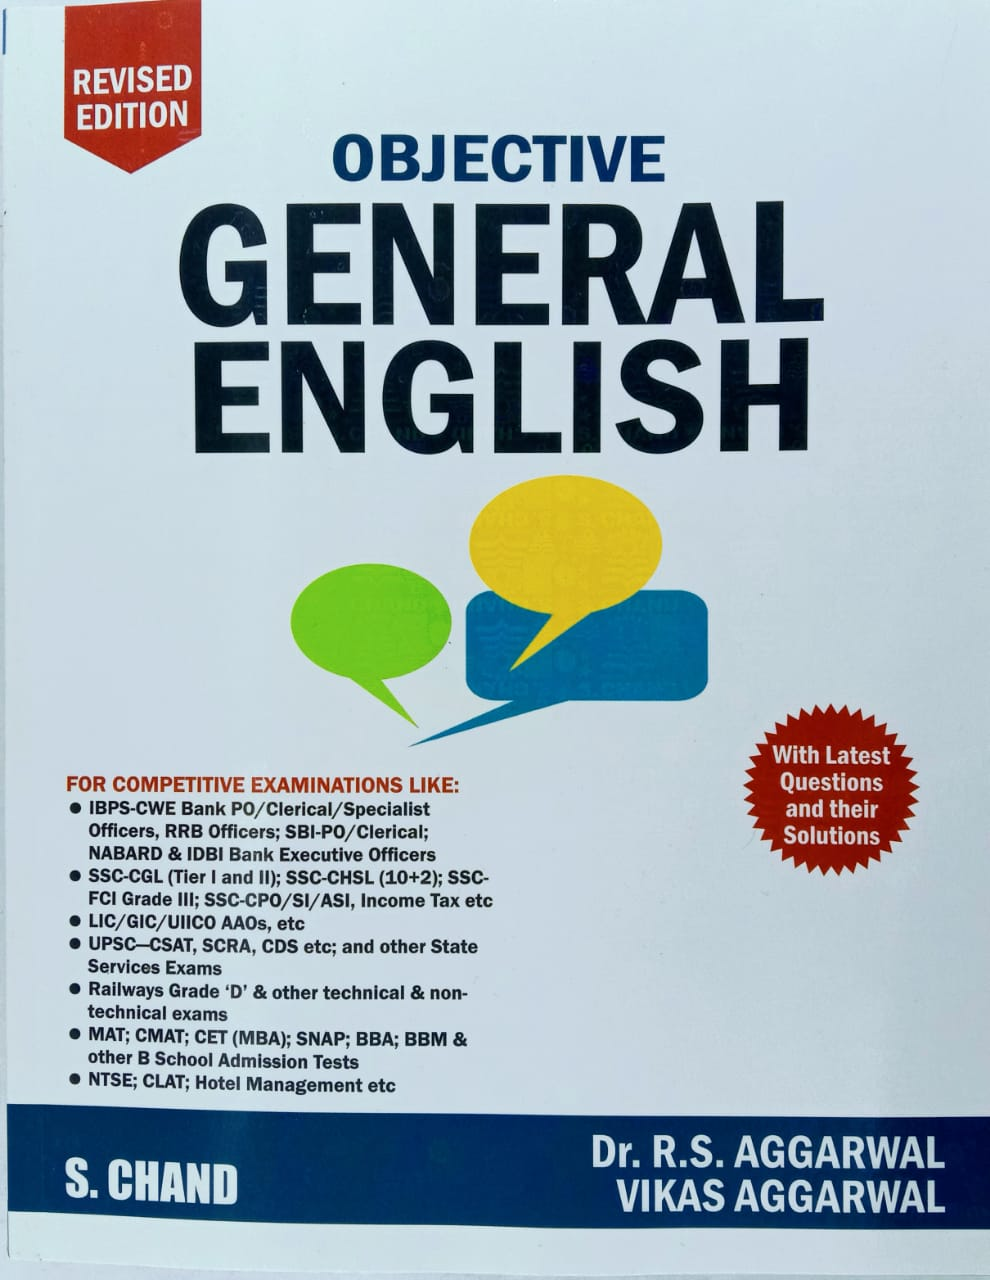 Objective General English by Dr. R S Aggarwal